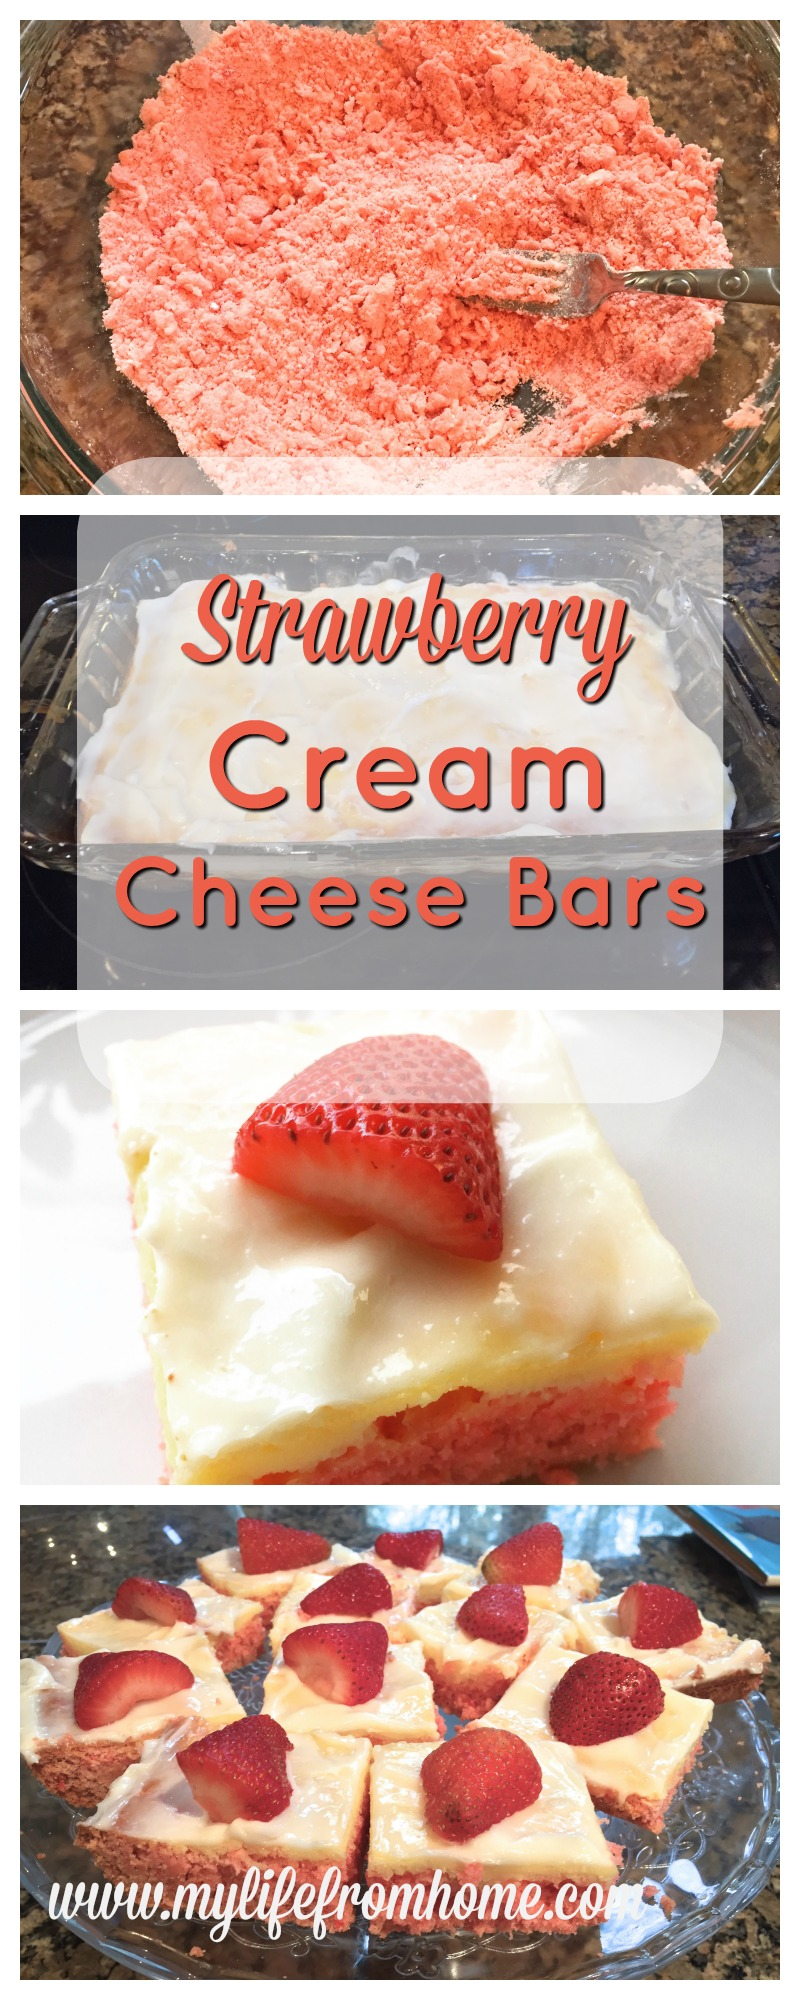 Strawberry Cream Cheese Bars by www.mylifefromhome.com